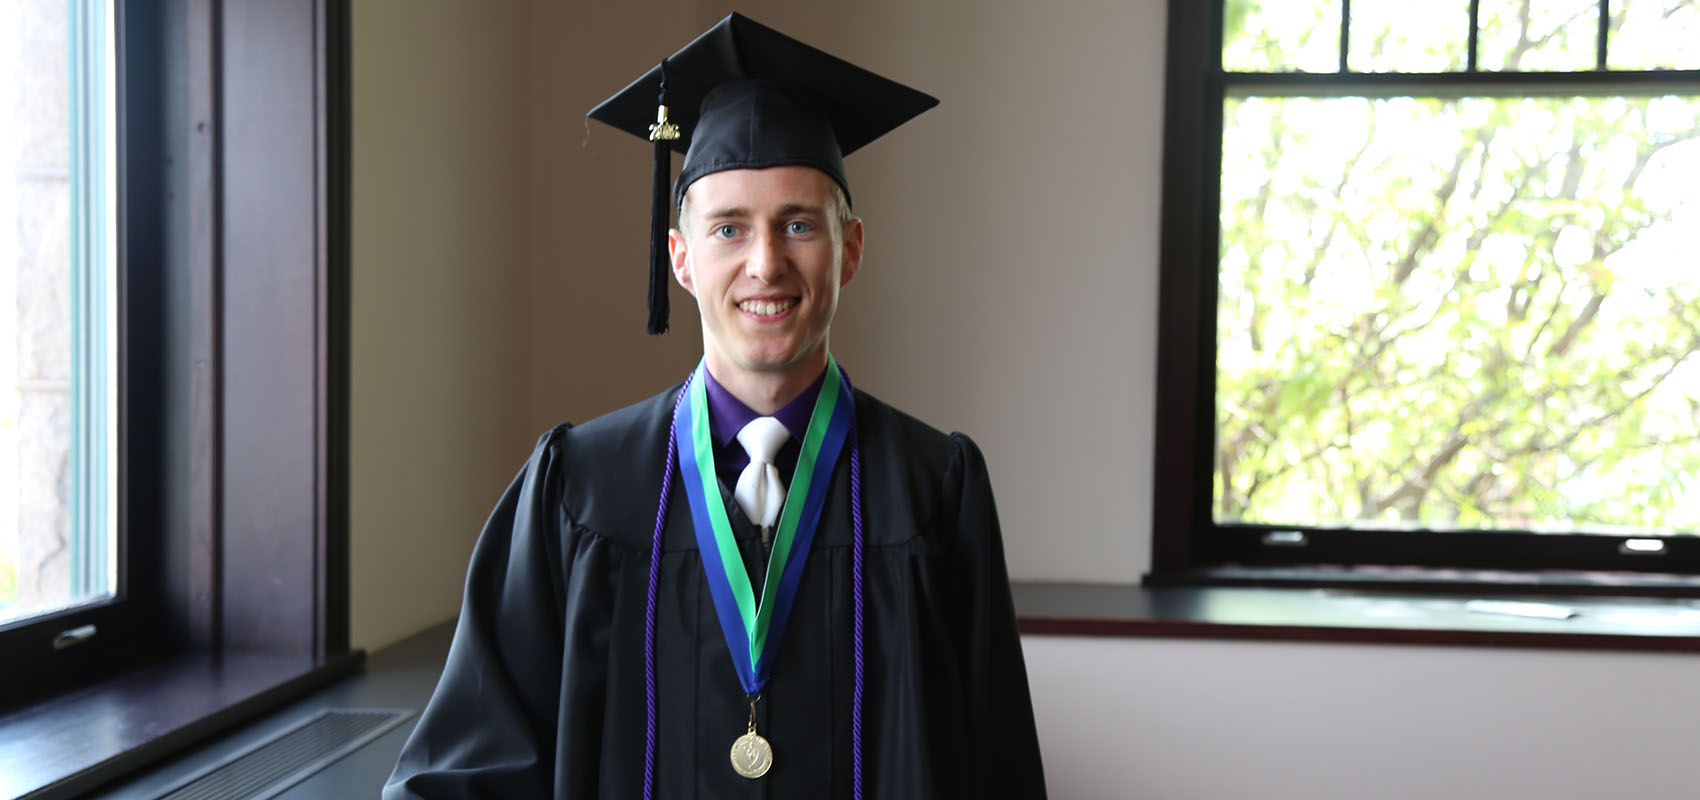 USF Exercise Science graduate on graduation day.